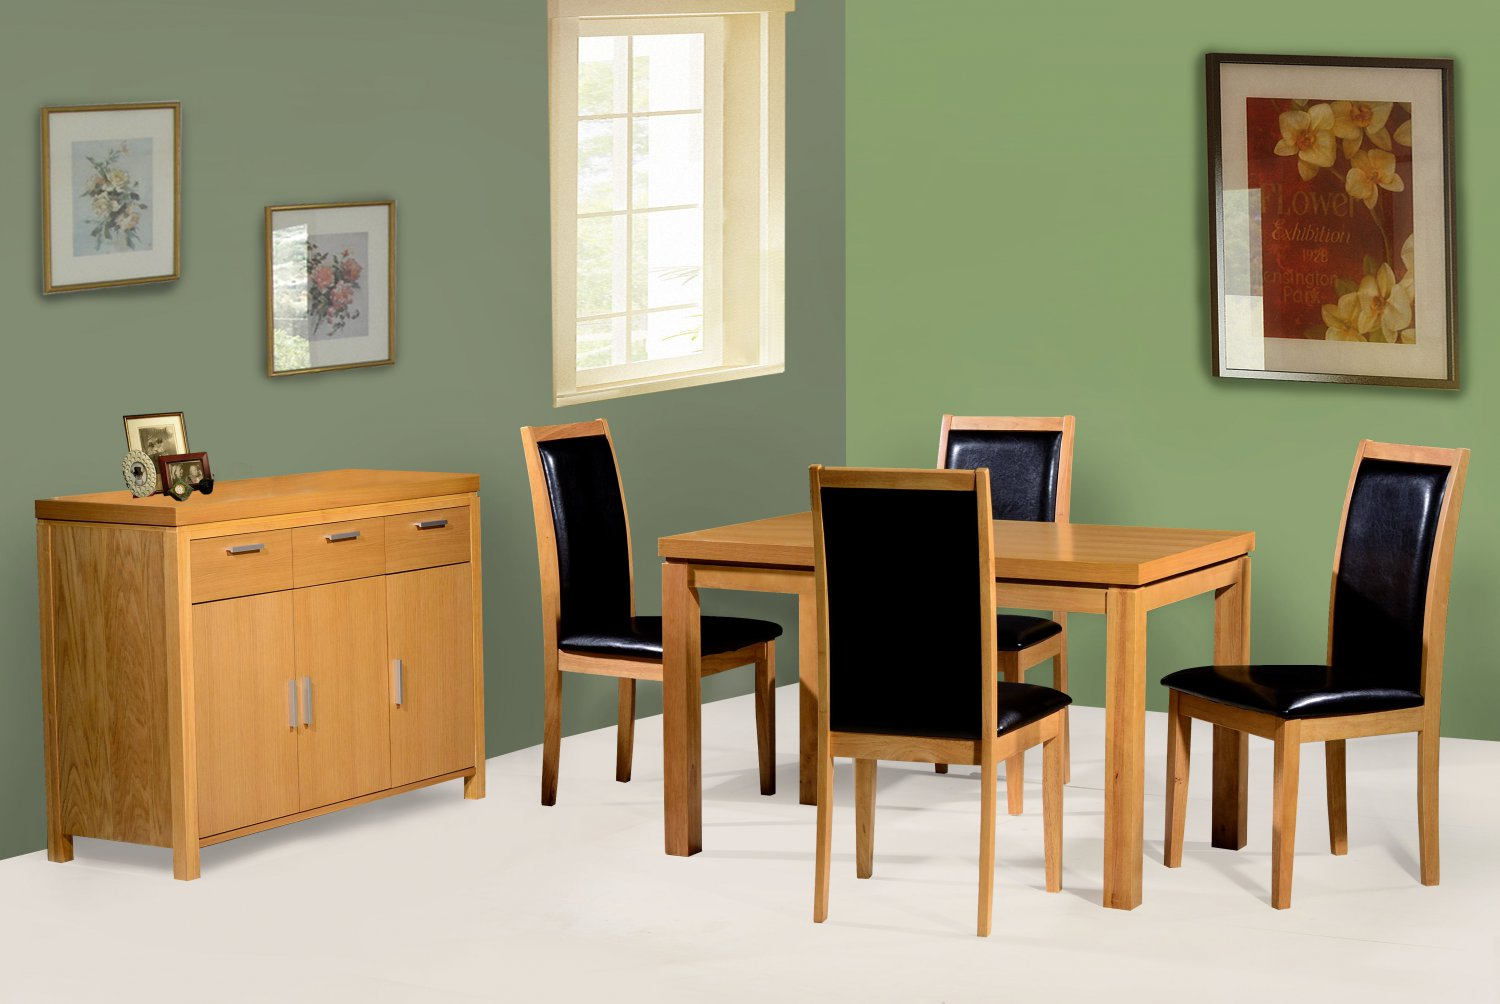 Perth 4 seater dining set